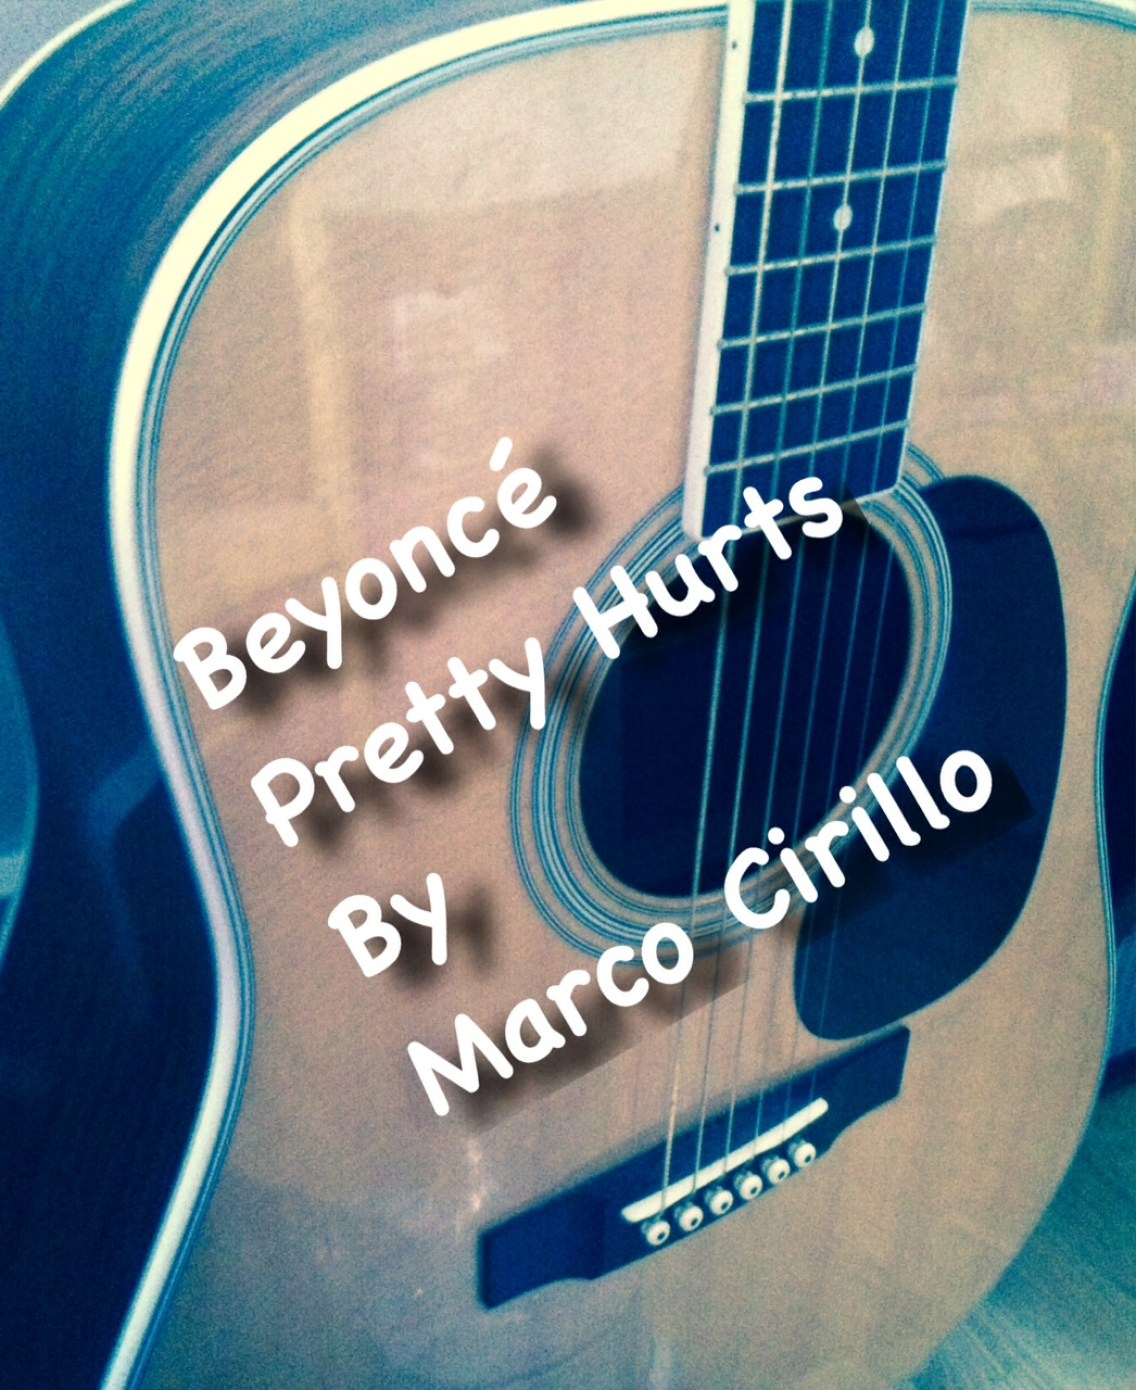 beyonce pretty hurts guitar lesson chords and tab marco cirillo london guitar lesson electric. Black Bedroom Furniture Sets. Home Design Ideas